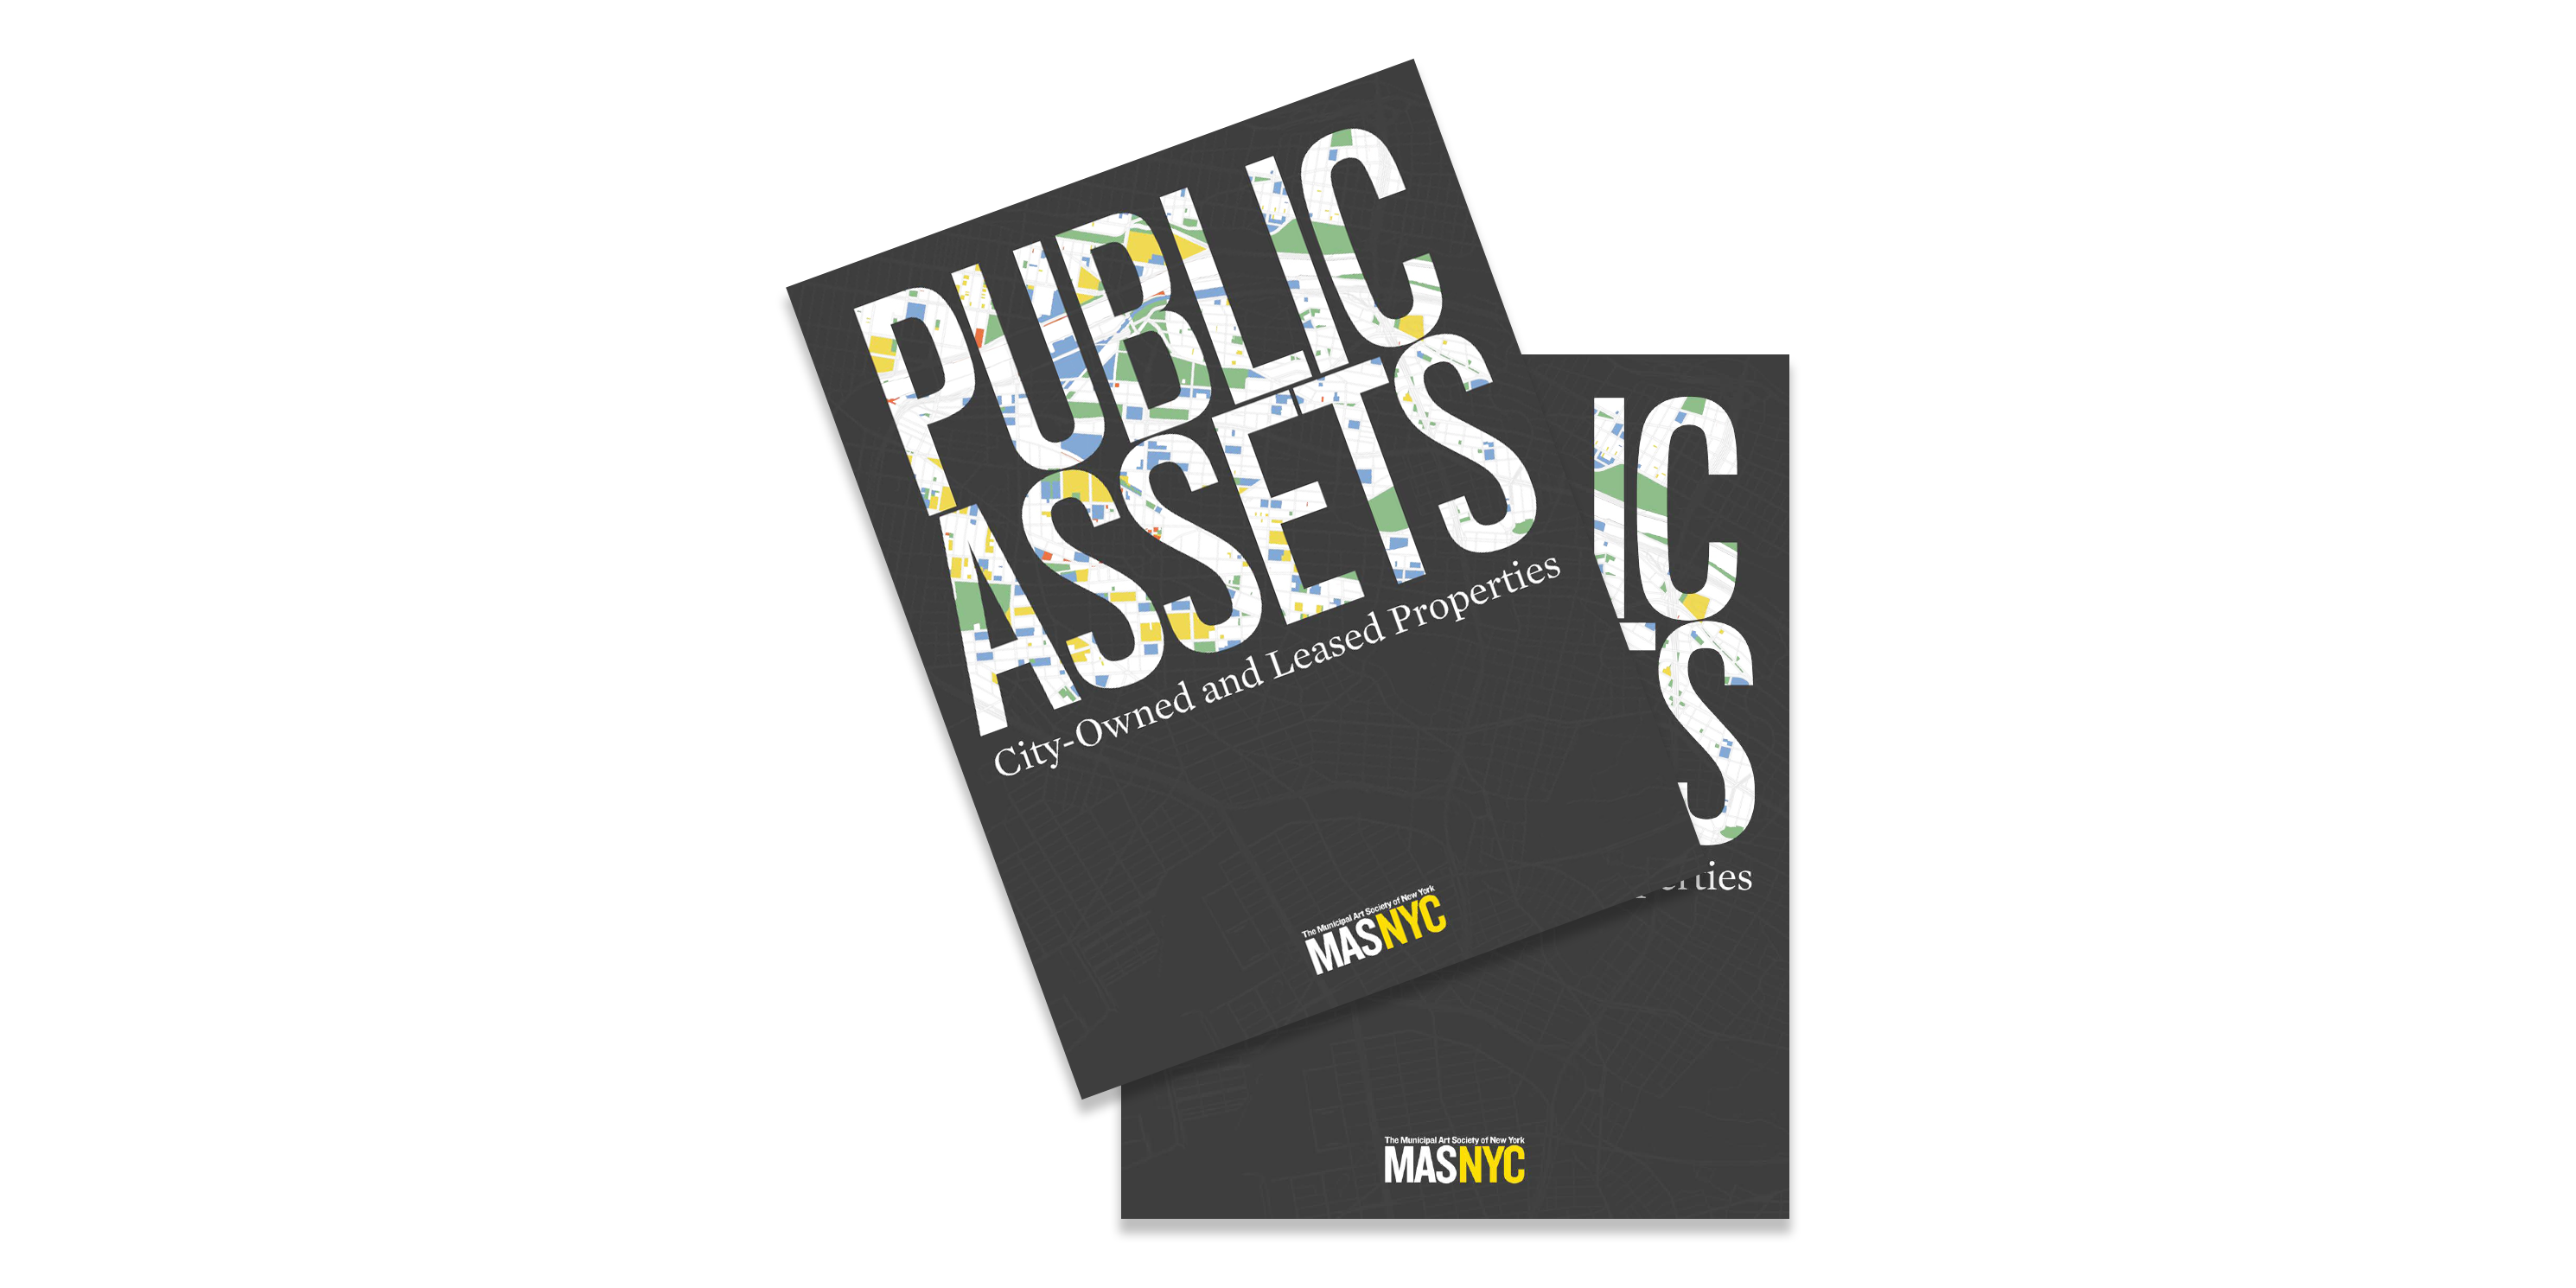 Cover of the Municipal Art Society of New York's Public Assets report